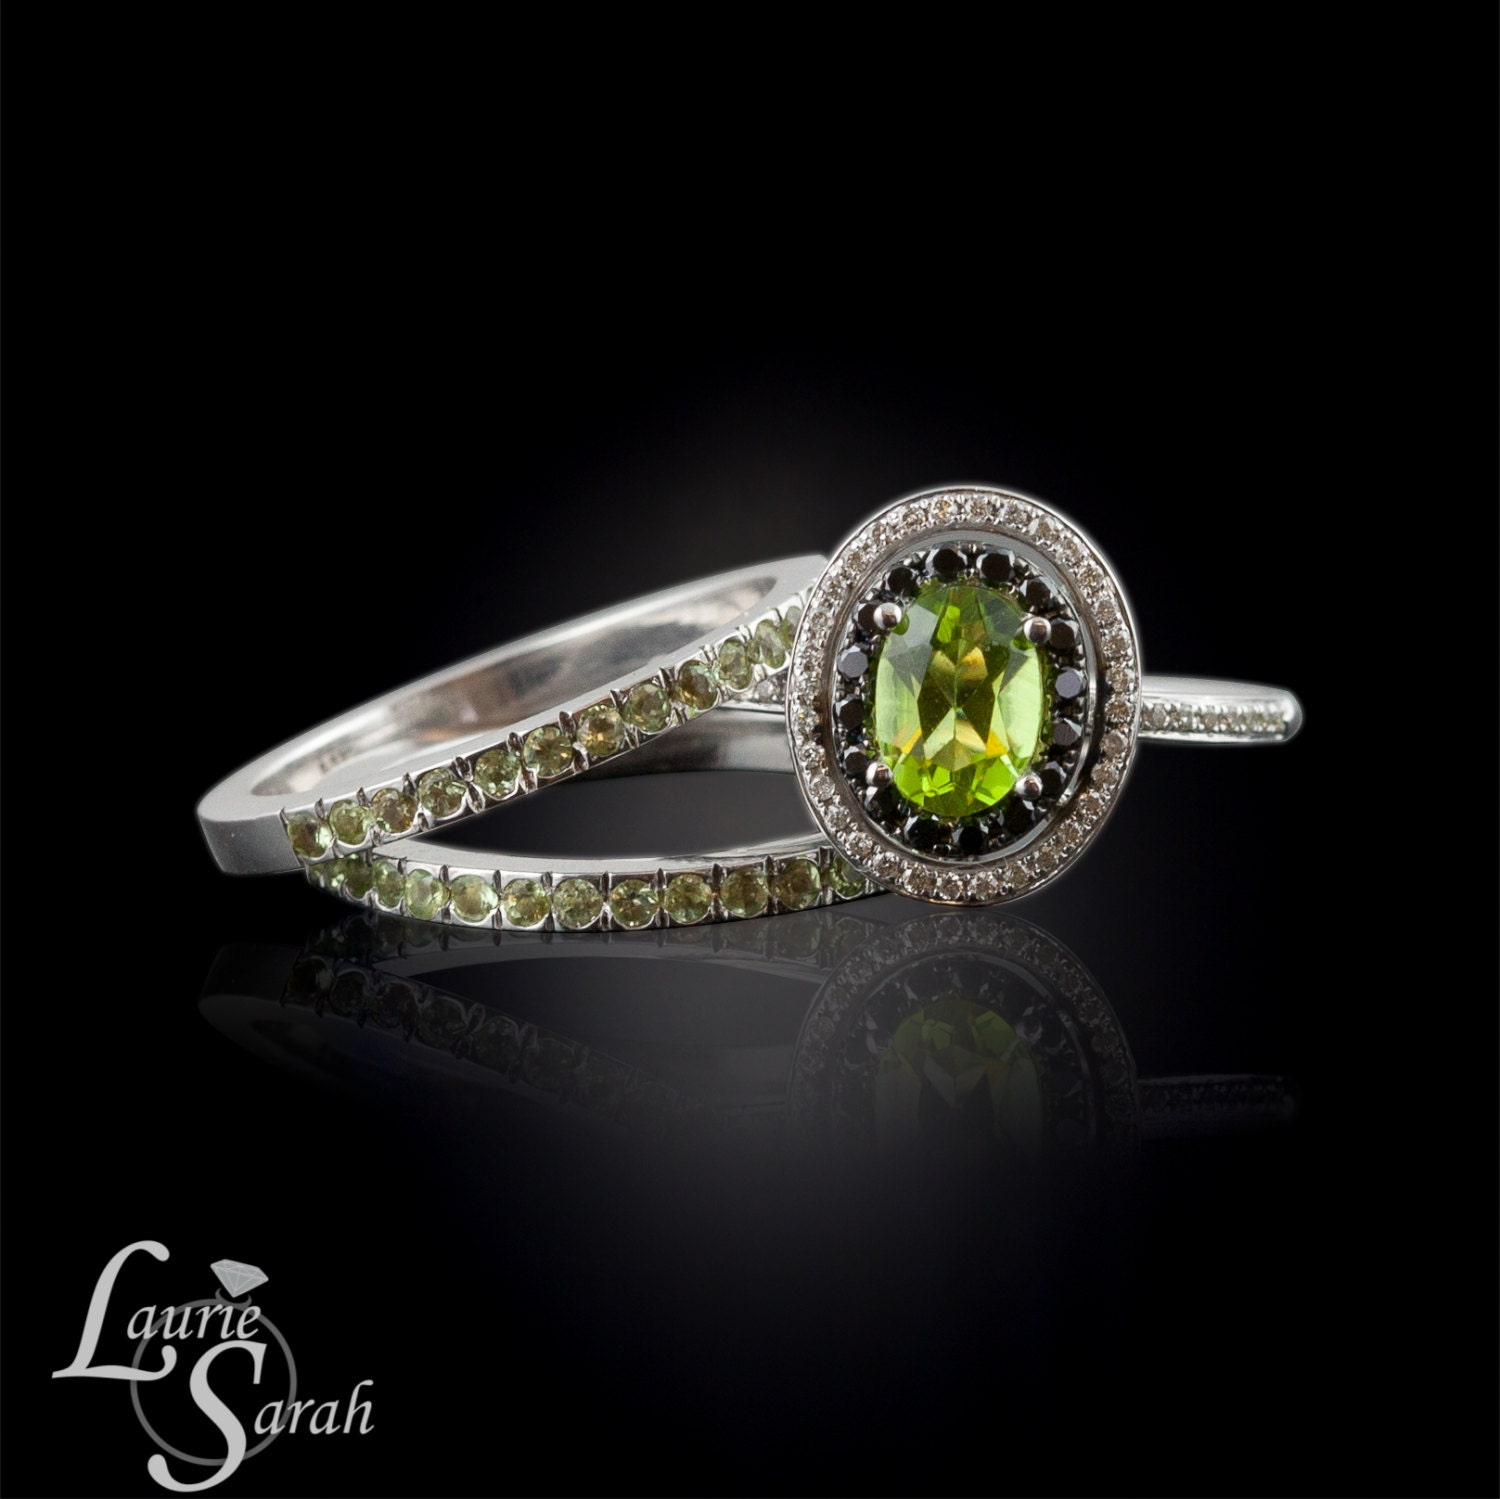 engagement rings peridot and black diamond engagement ring. Black Bedroom Furniture Sets. Home Design Ideas